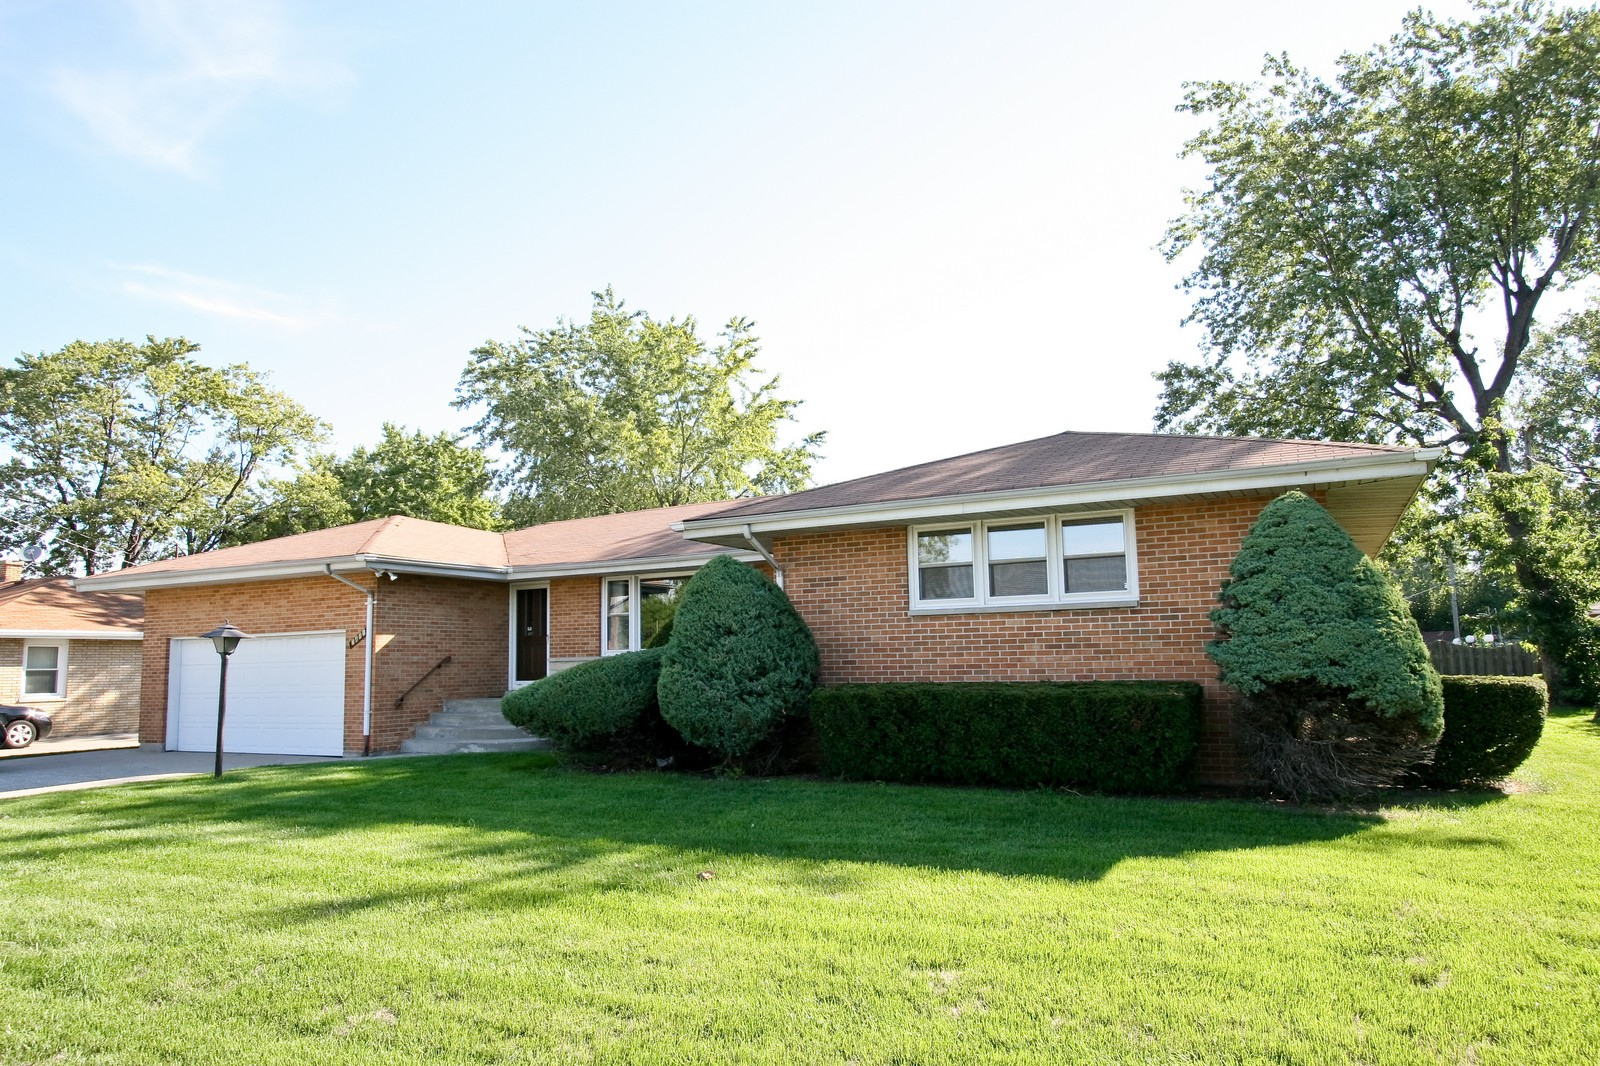 Real Estate Photography - 7431 S Roberts Rd, Bridgeview, IL, 60455 - Front of House